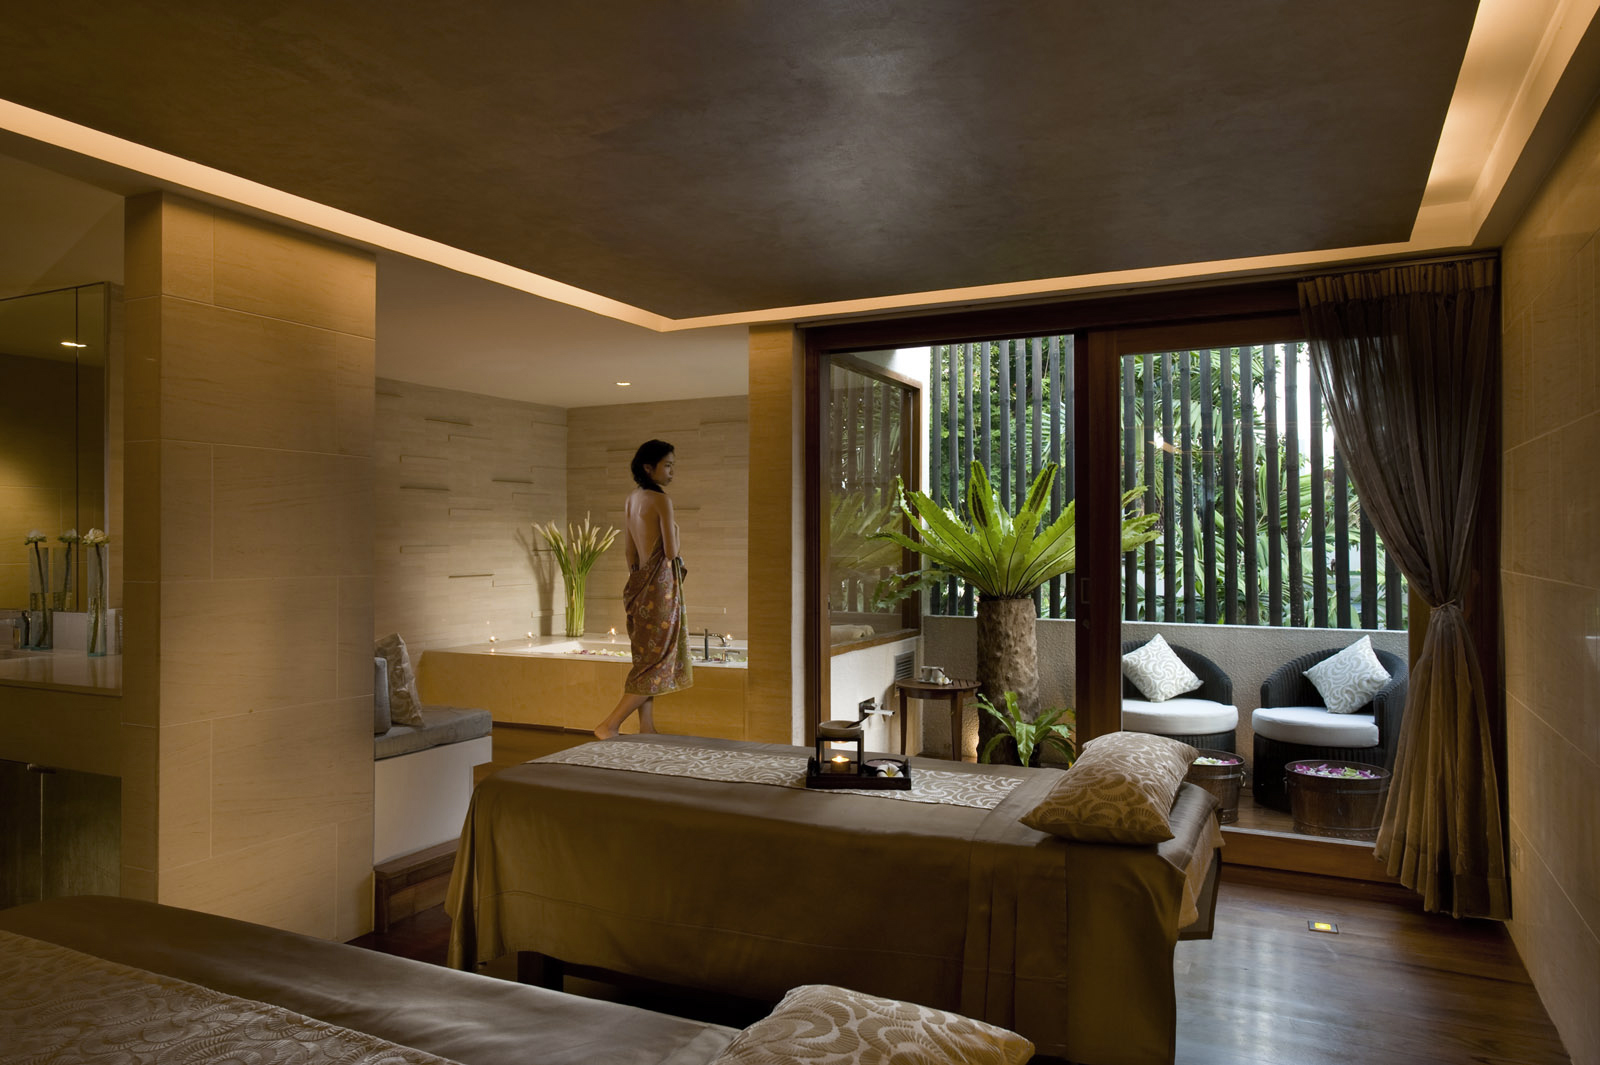 Portfolio luxury spas professional world wide for Small luxury spa hotels